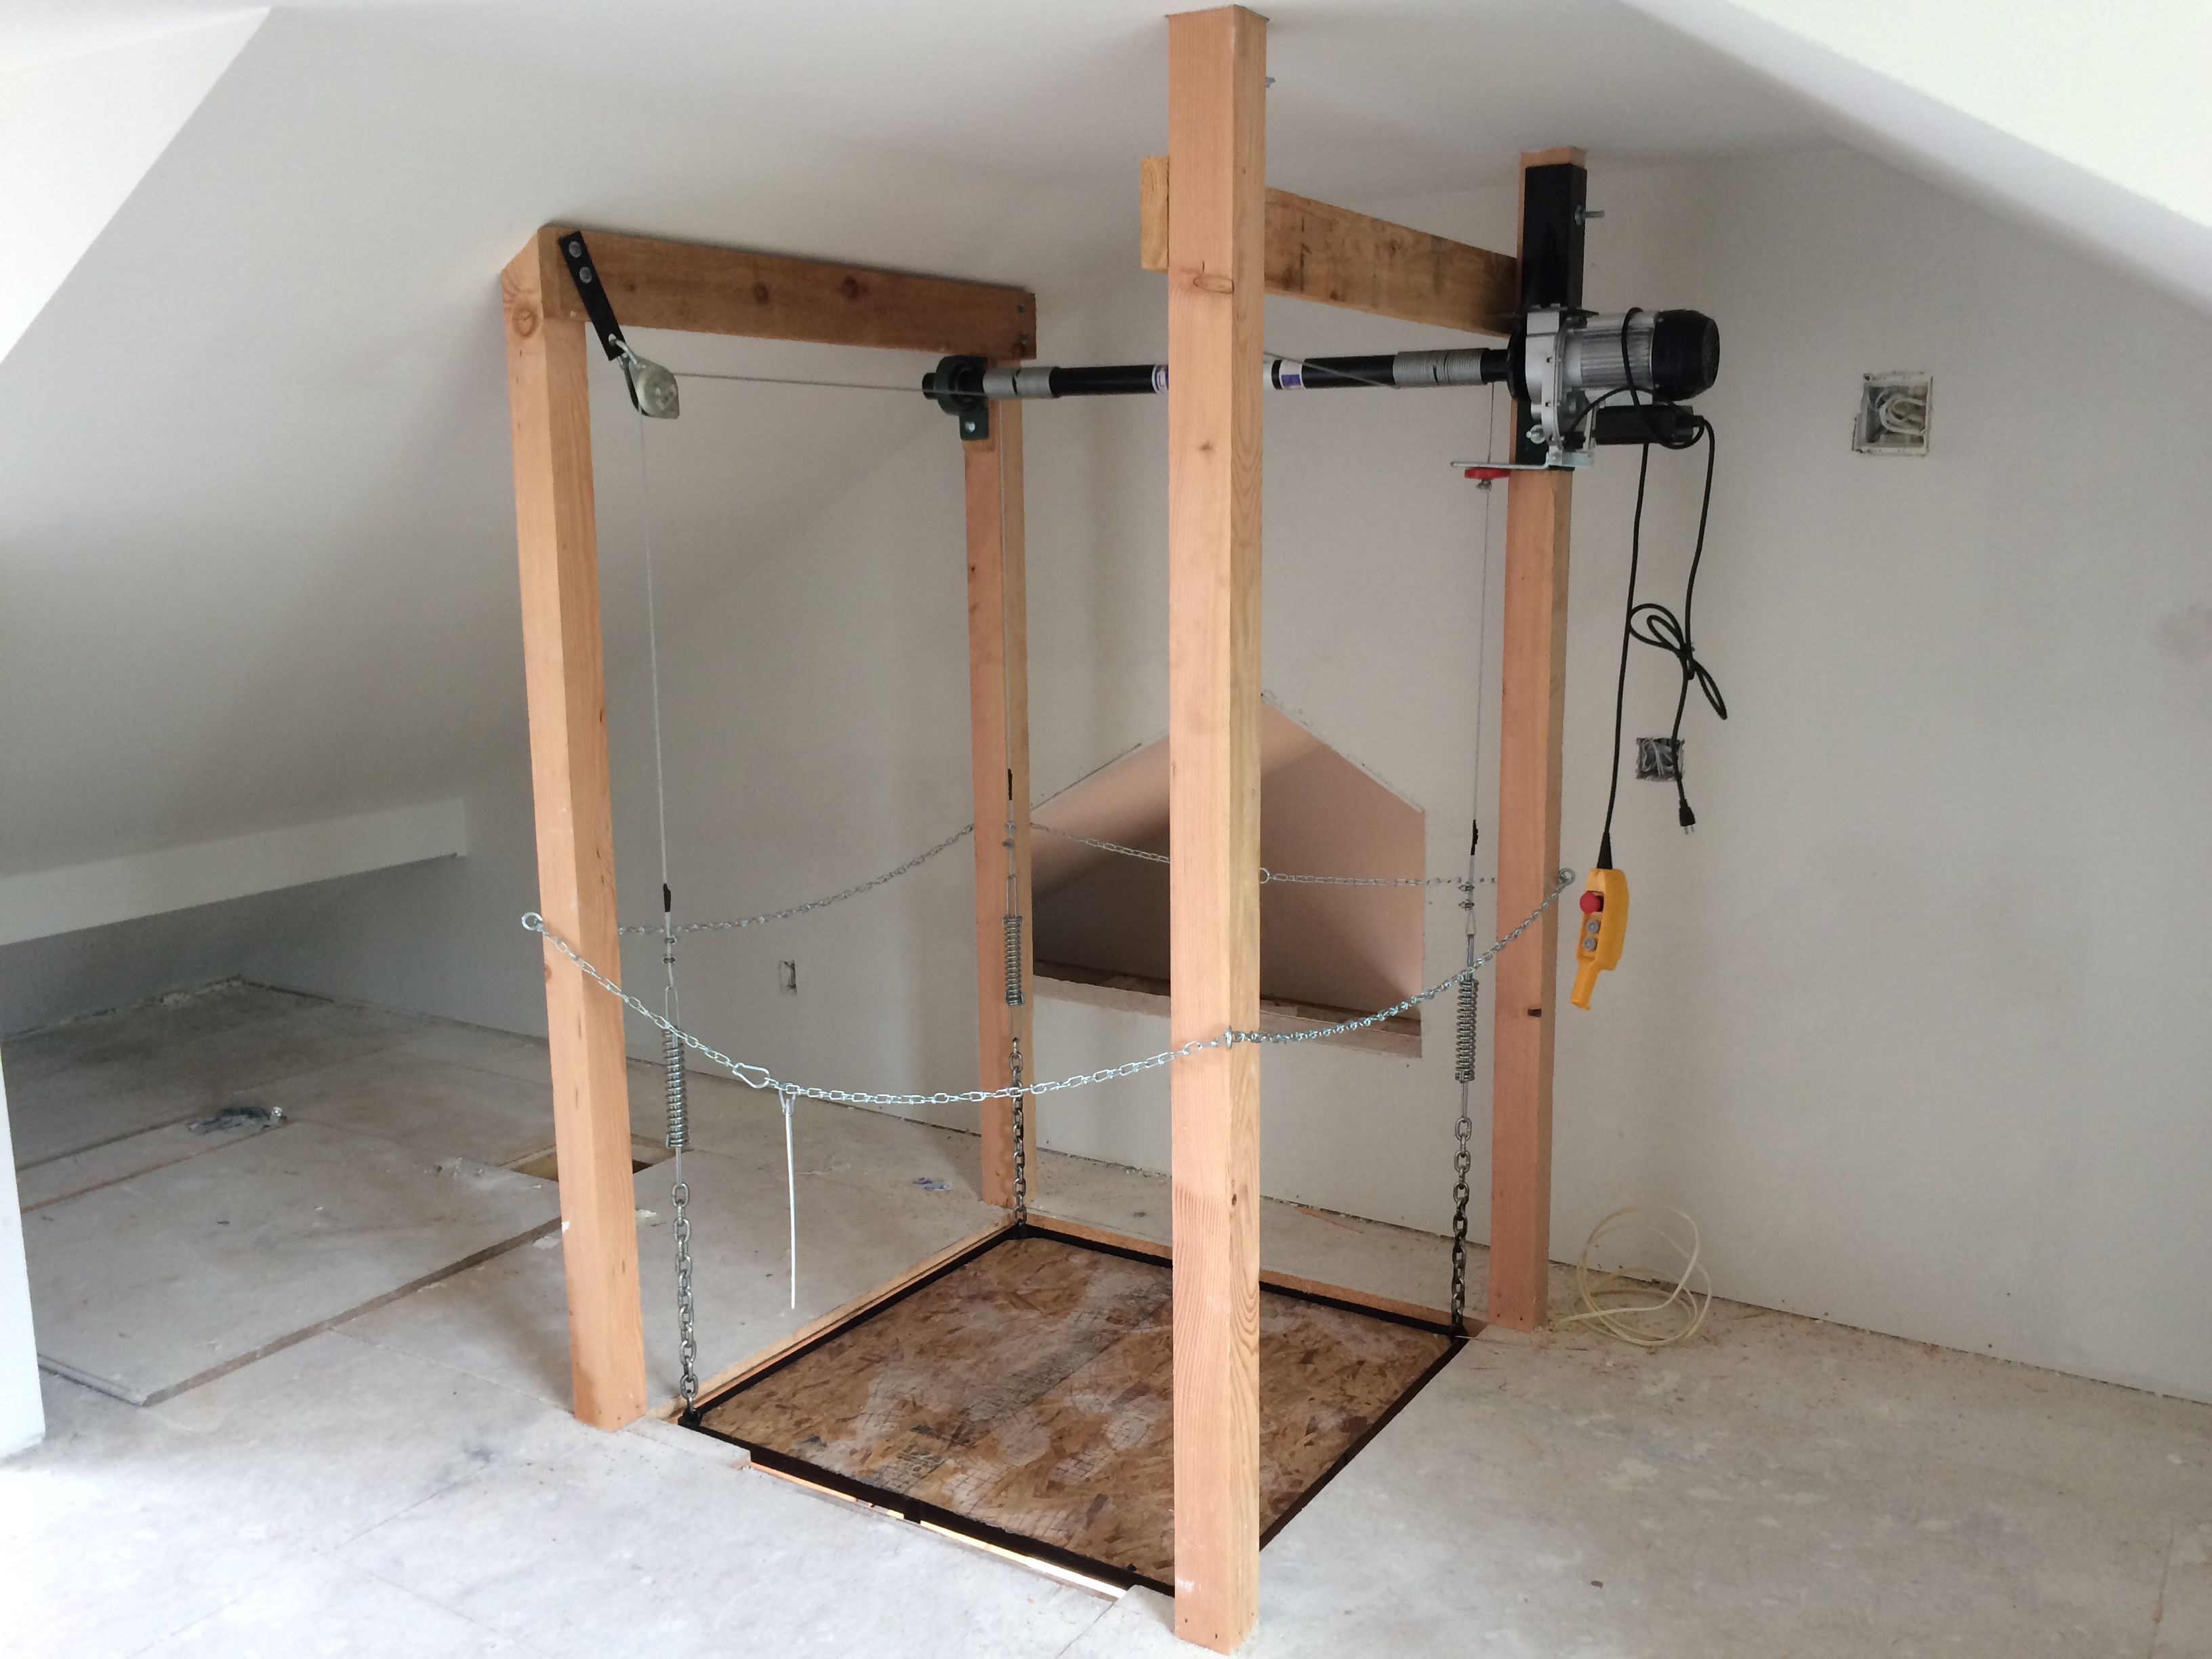 903 705 5600 The Attic Lift Utilize Your Attic Space For More Efficient Storage Instead Of Just Junk With Our Attic Lift Garage Lift Garage Ceiling Storage